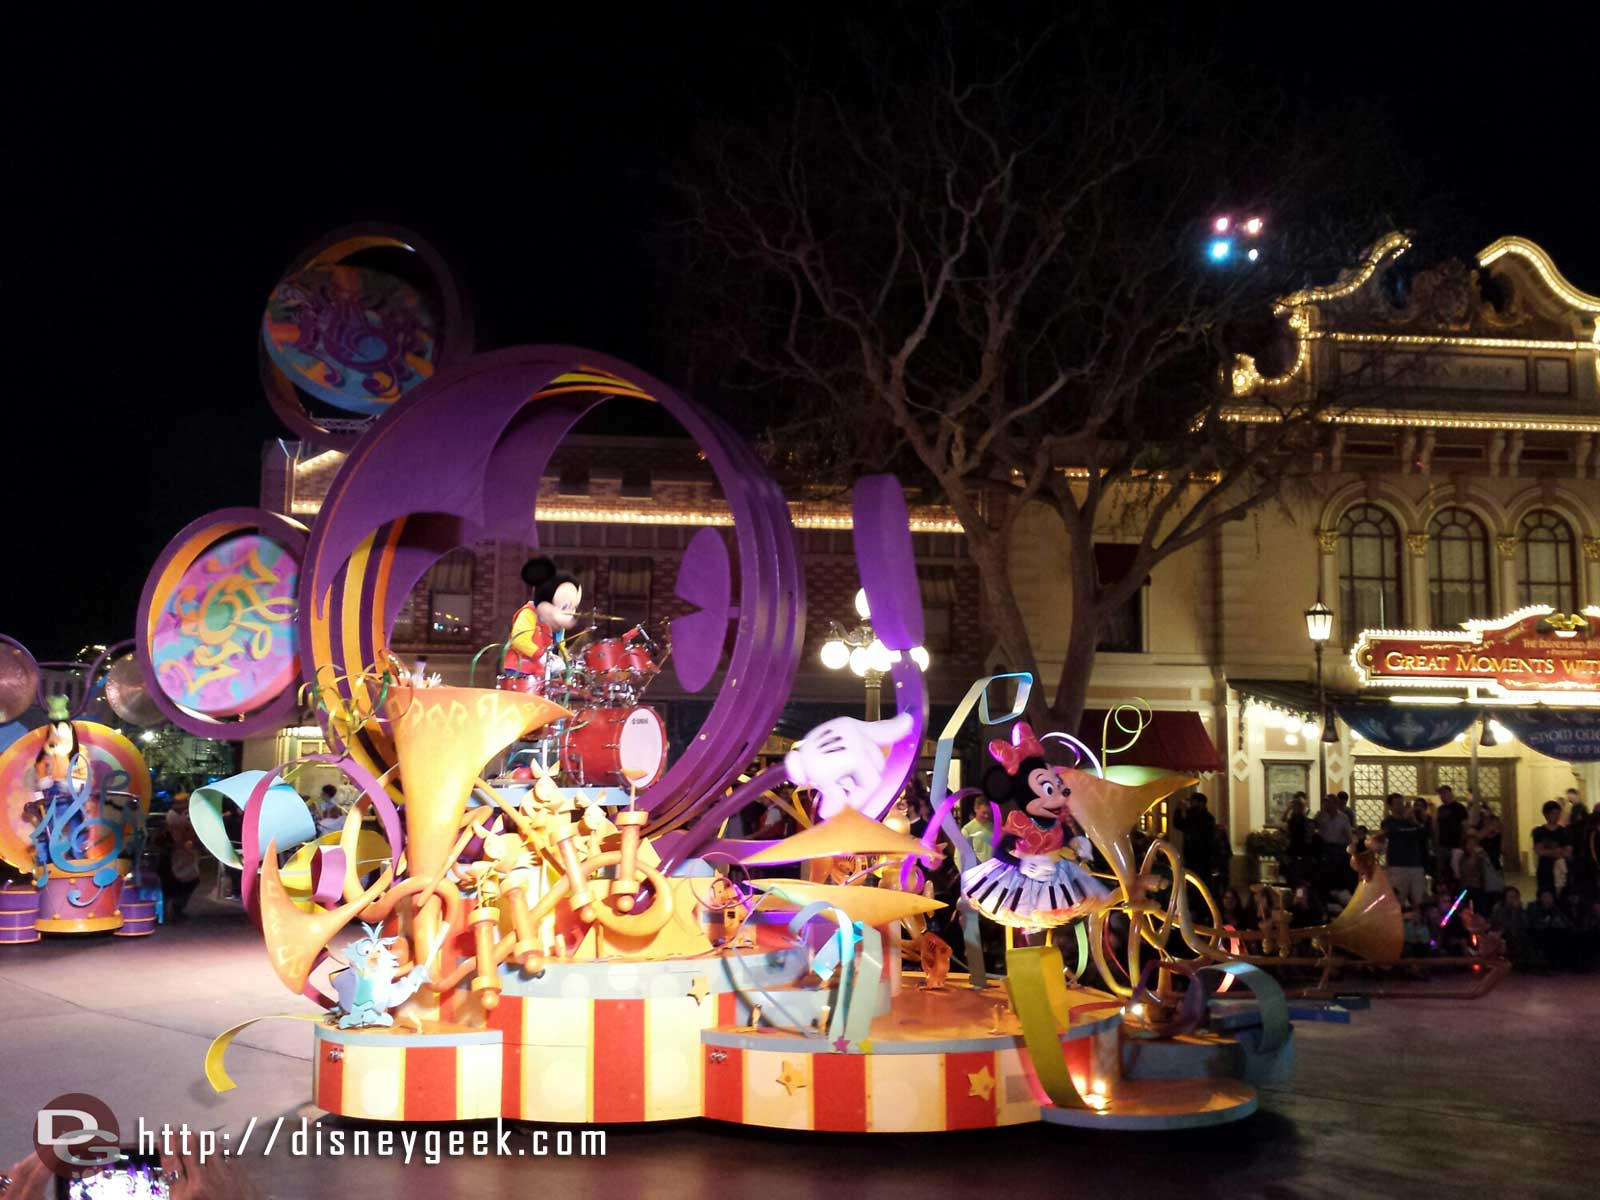 Mickey's Soundsational parade starting #Disneyland